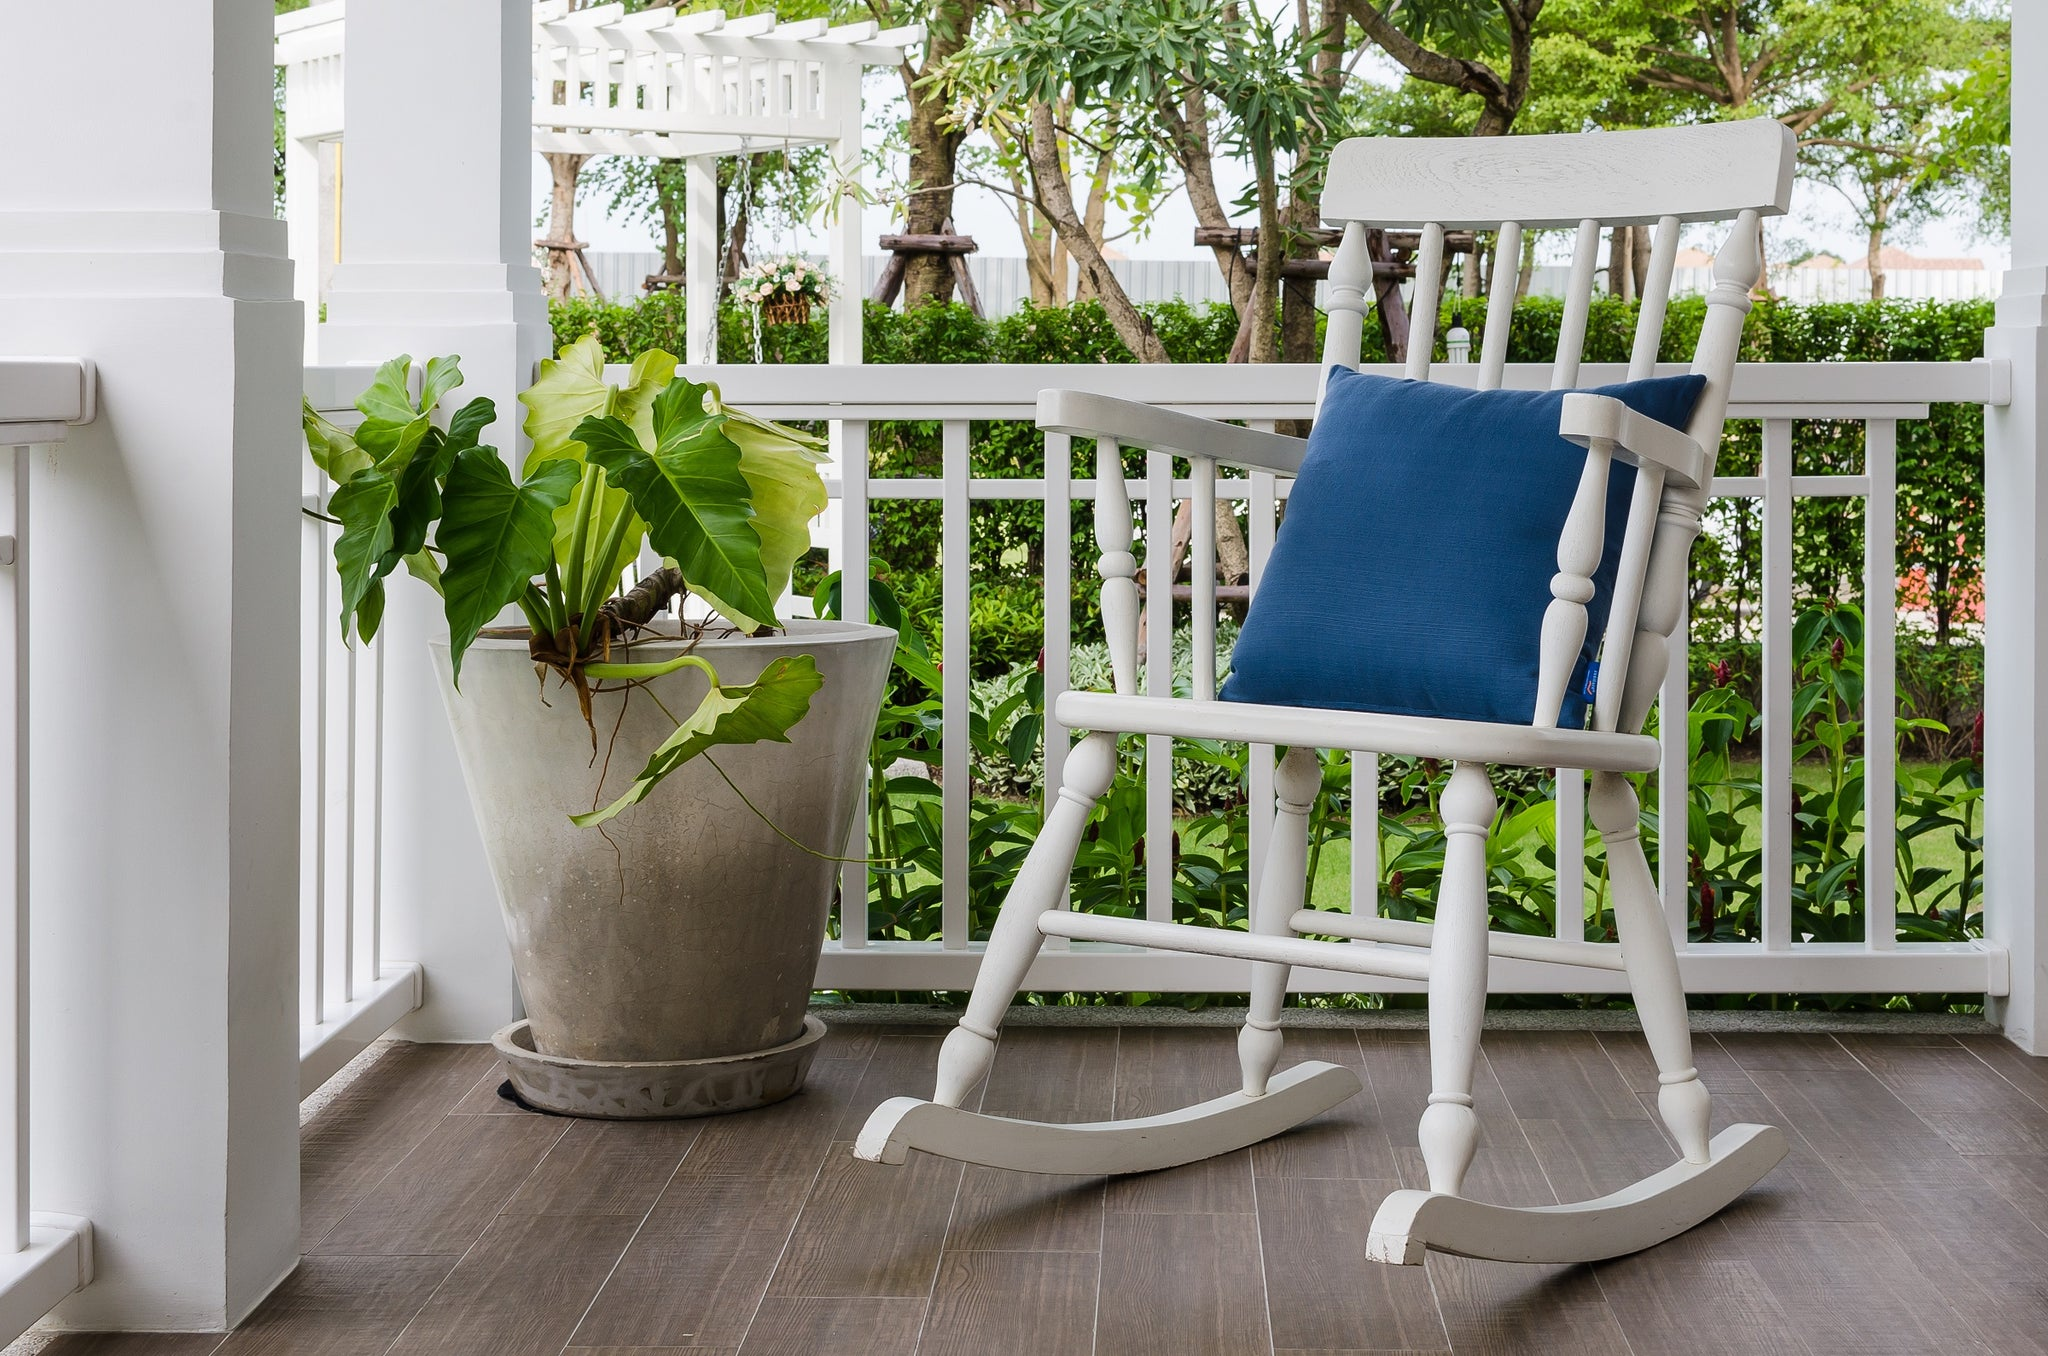 Add Colorful Pillows to Liven Up a Porch